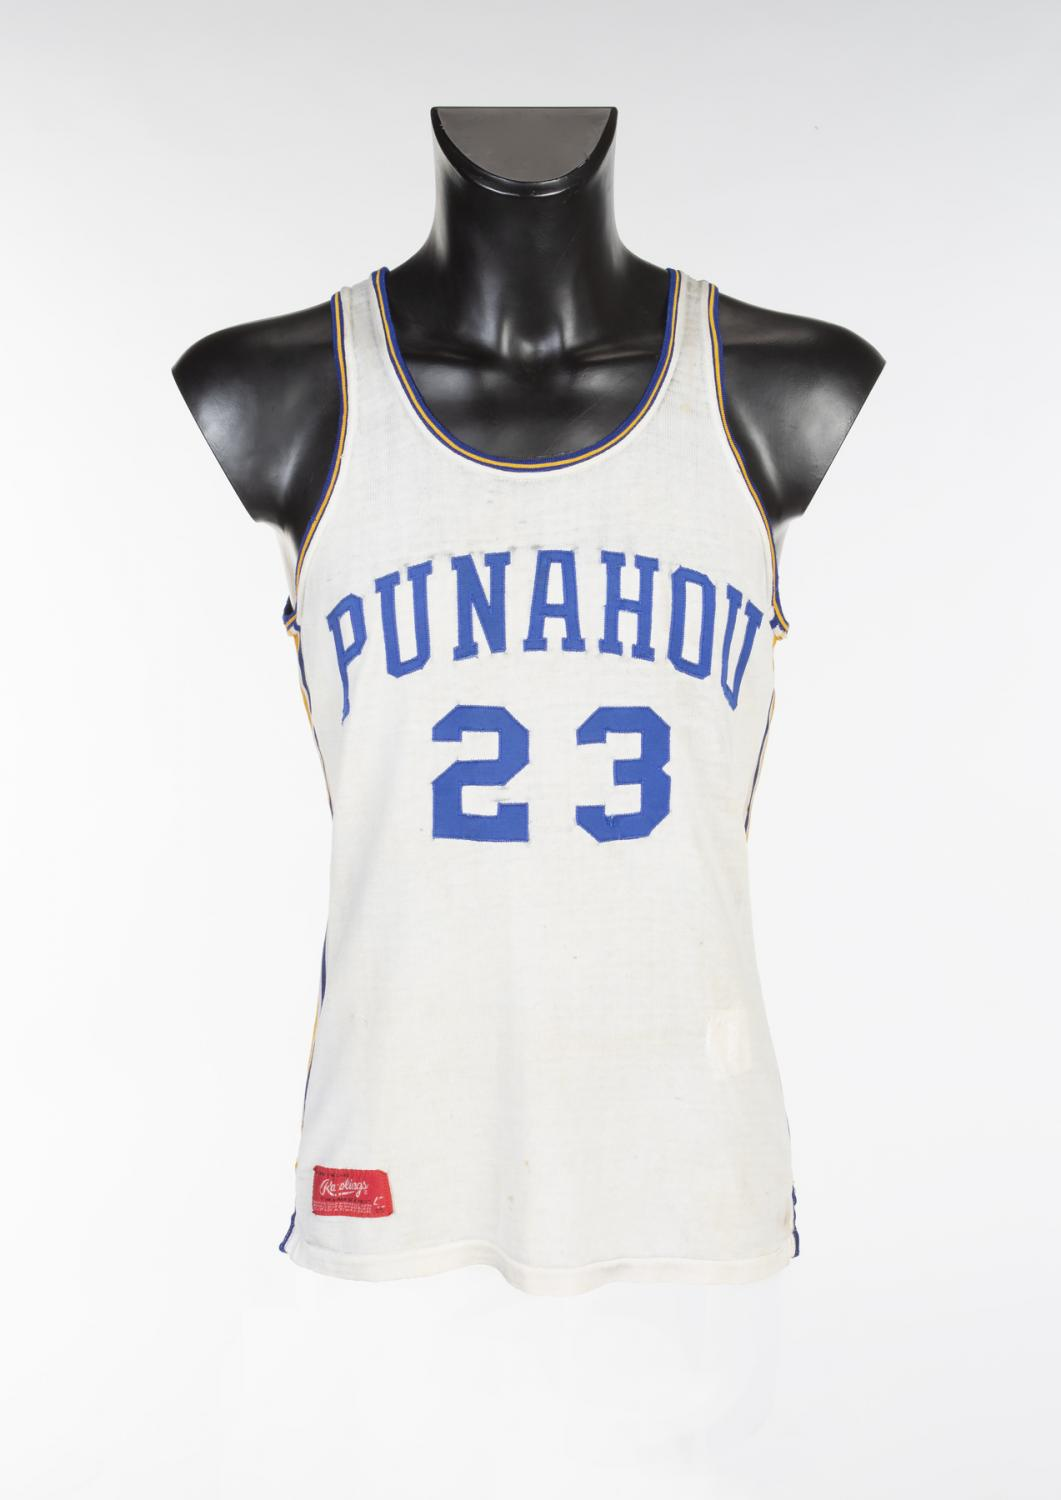 Barack Obama high school basketball jersey sets new record at online auction